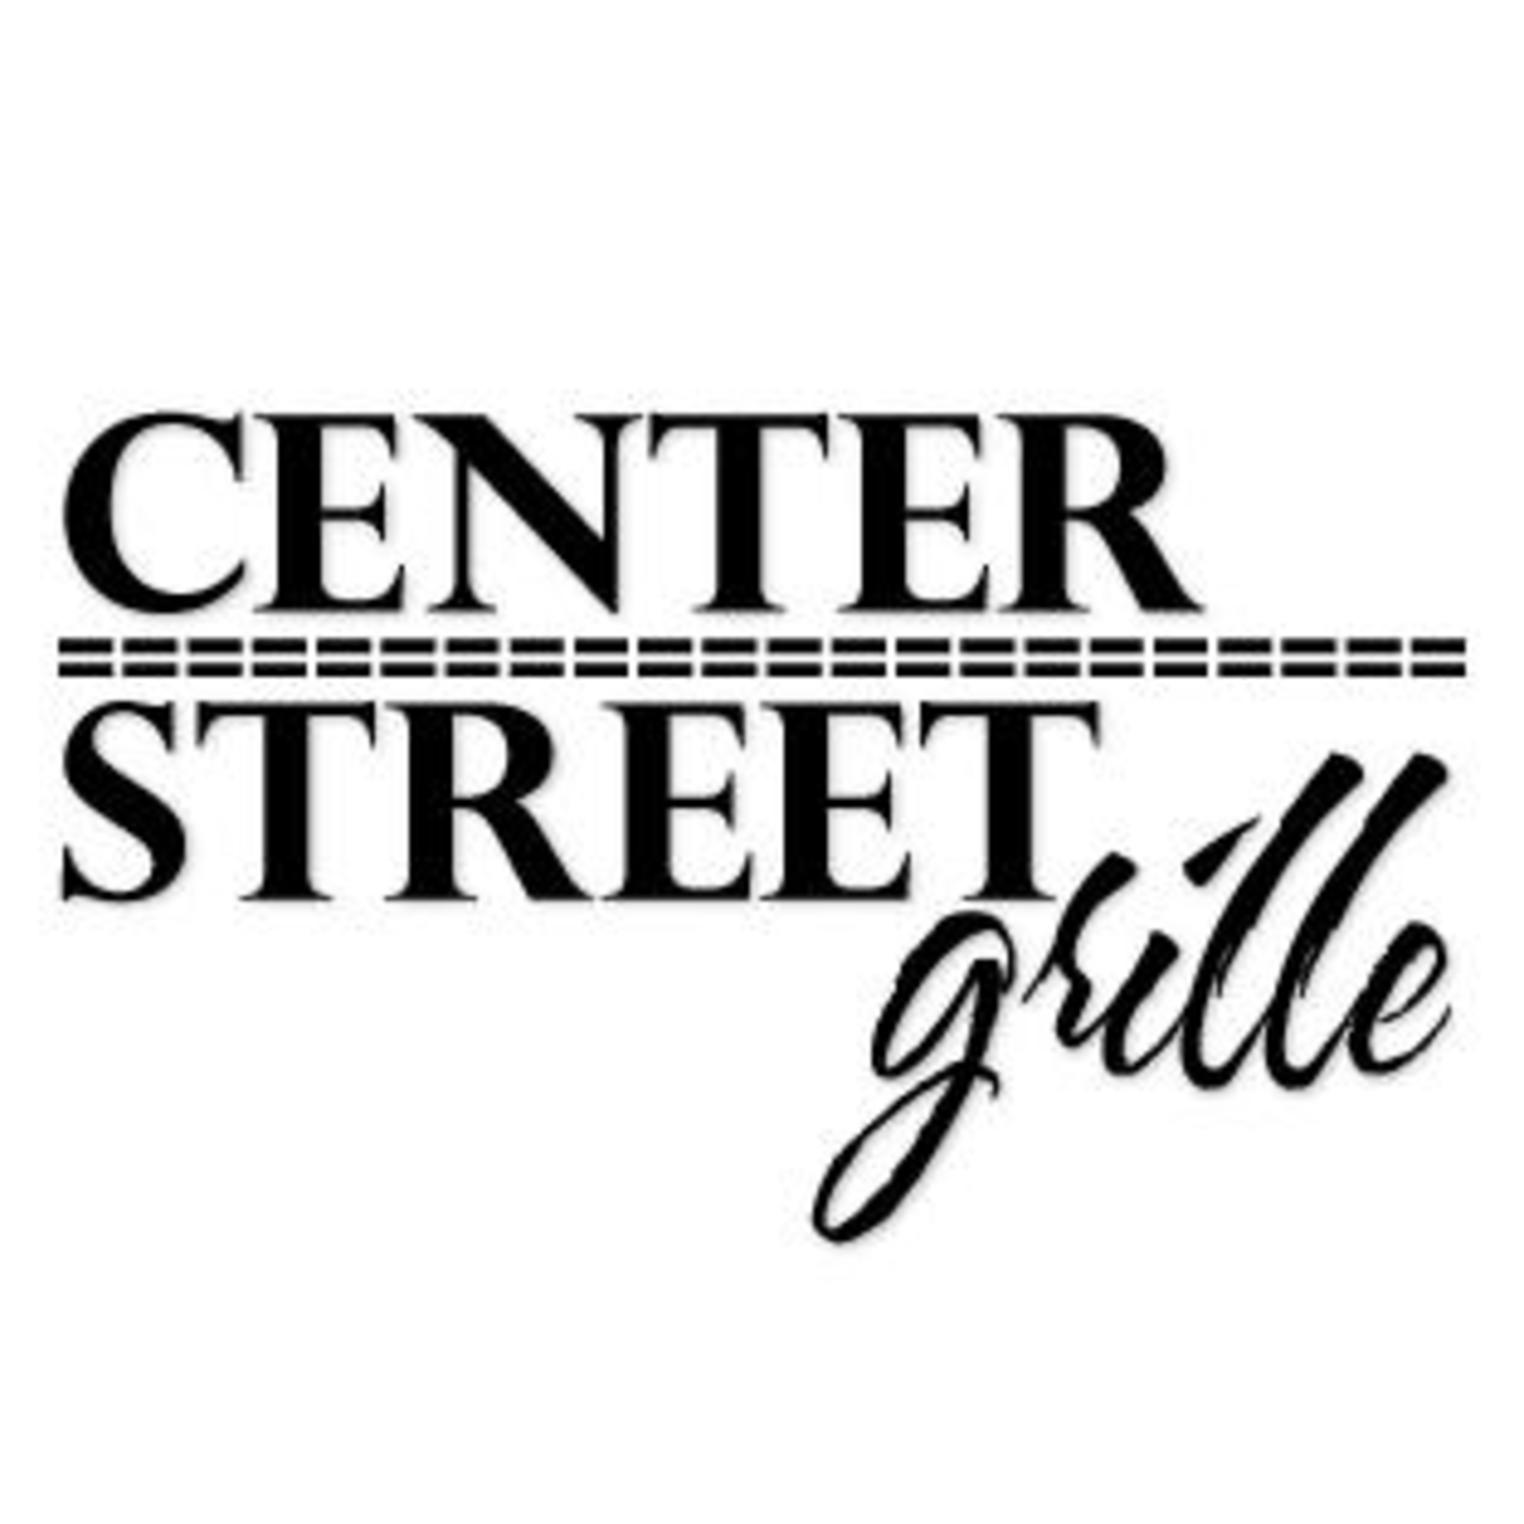 Center Street Grille